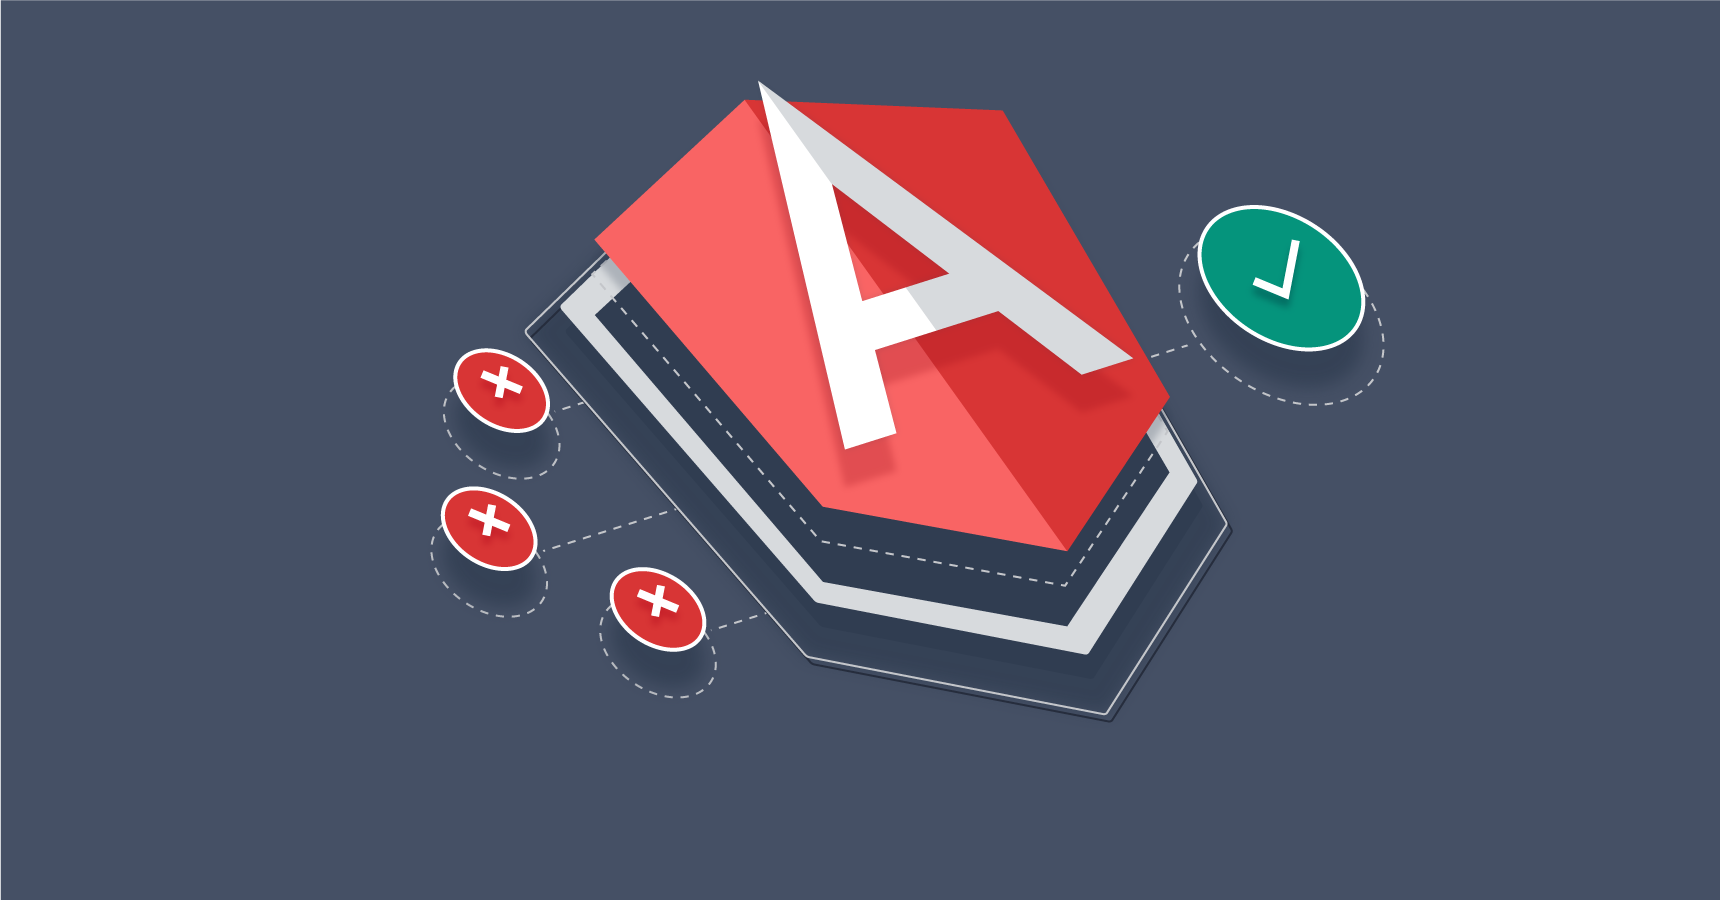 Top 18 Most Common AngularJS Mistakes That Developers Make